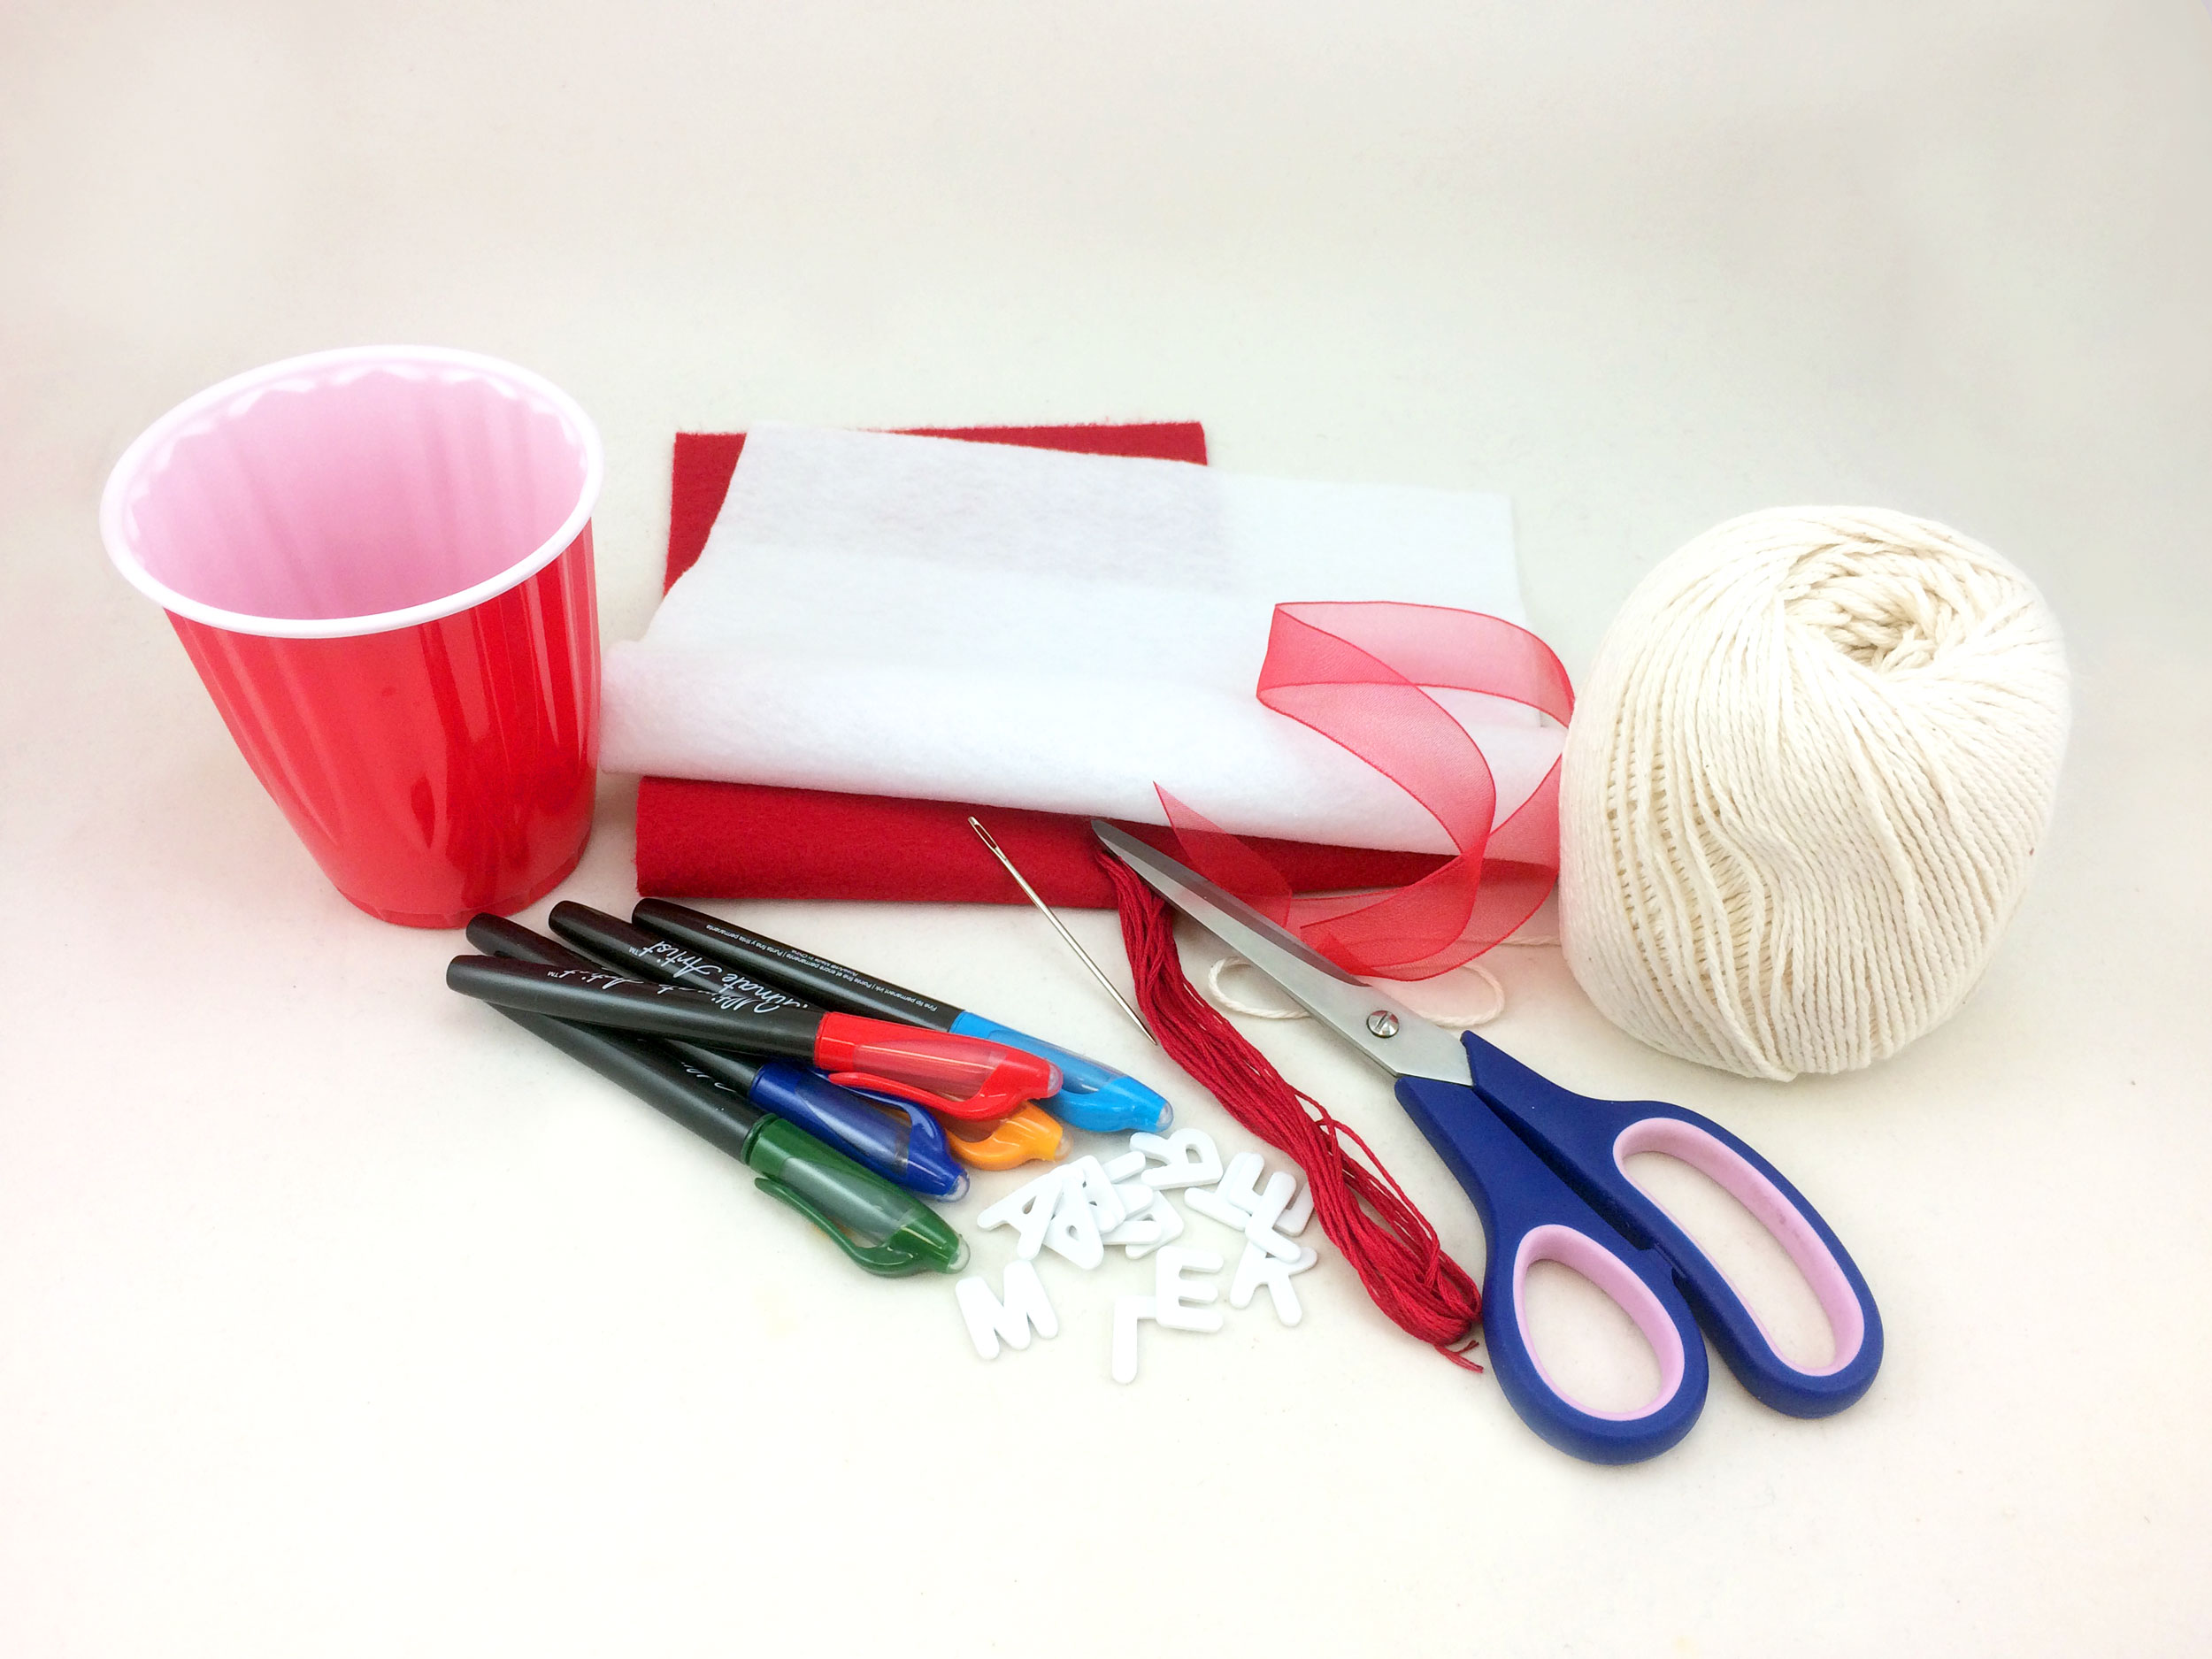 Baseball Ornament supplies on table, such as scissors, felt, markers, plastic cup, and string. | OrnamentShop.com